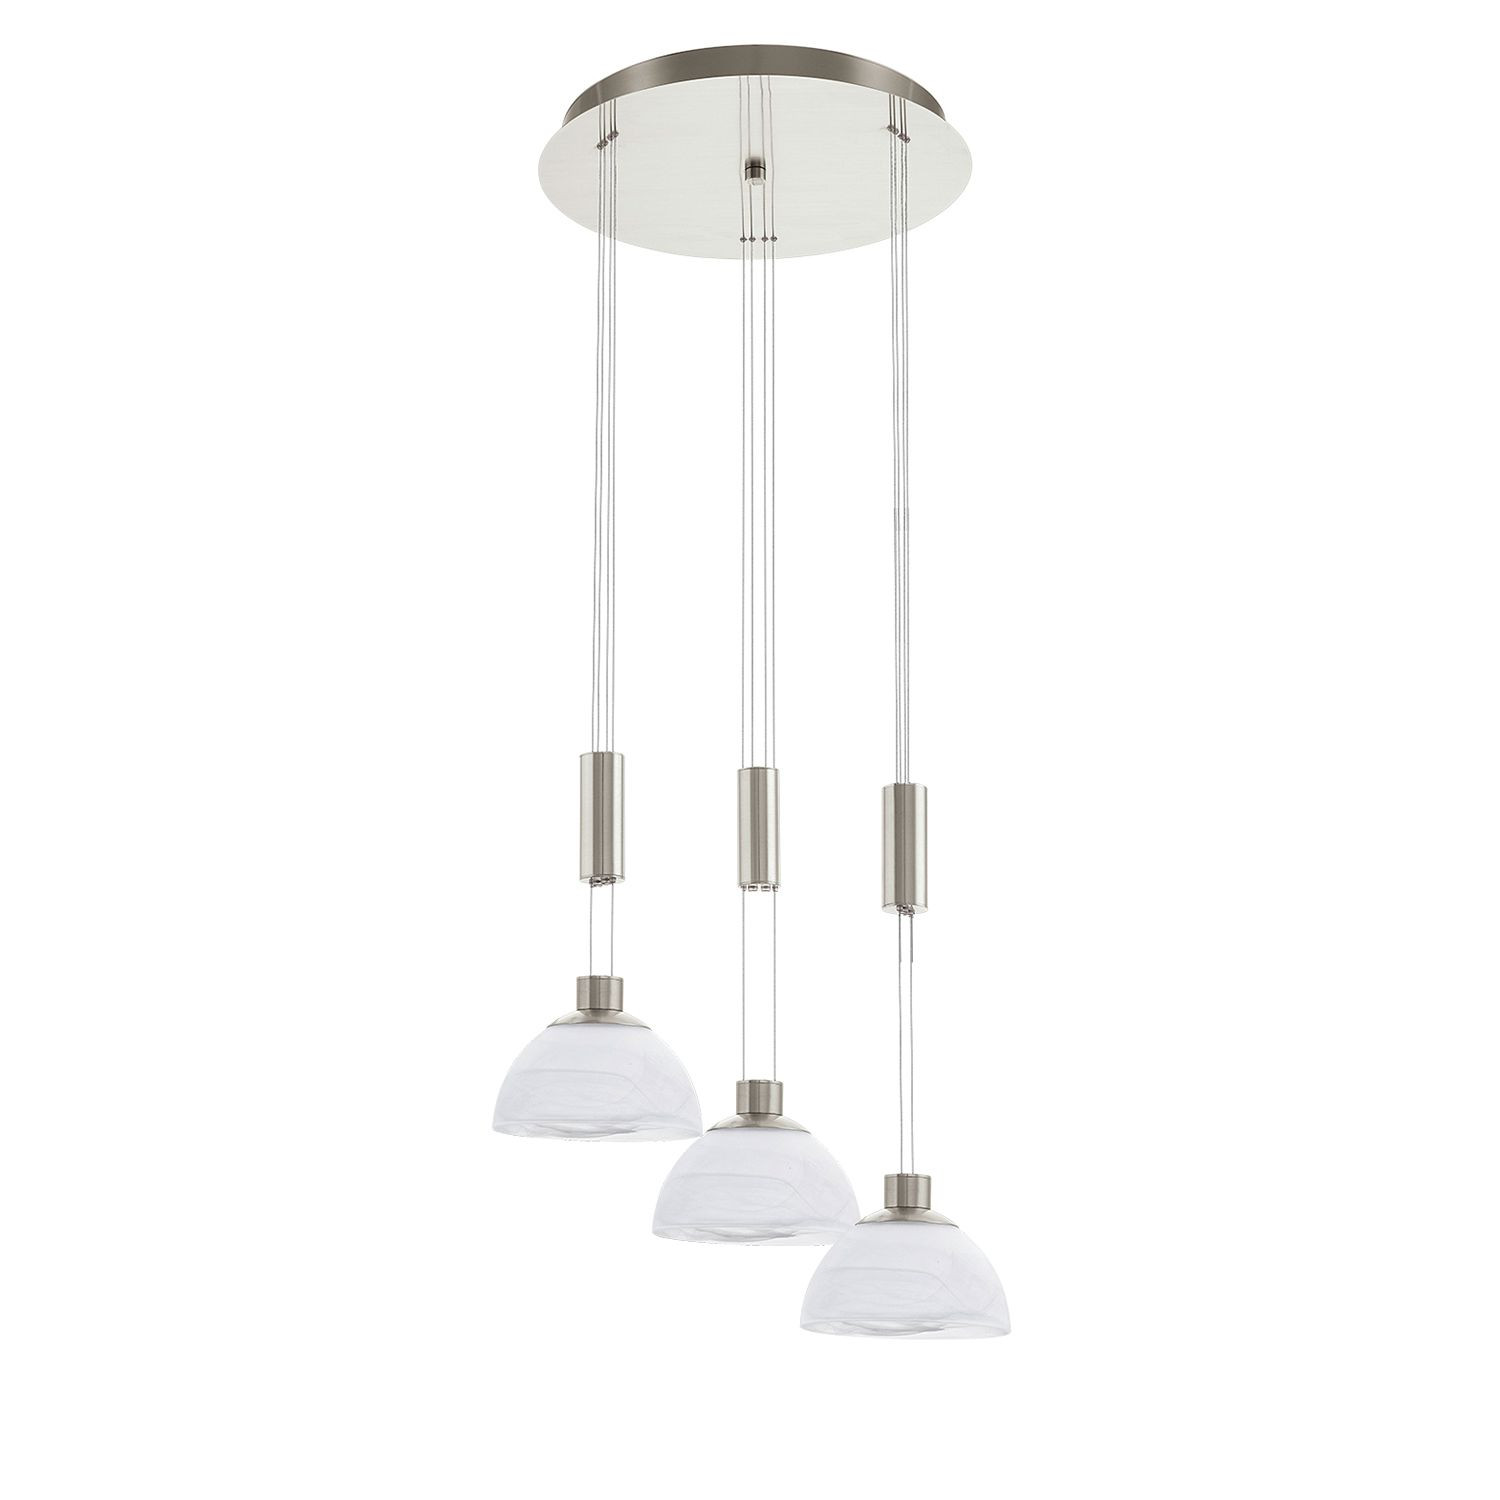 Suspension LED Montefio I